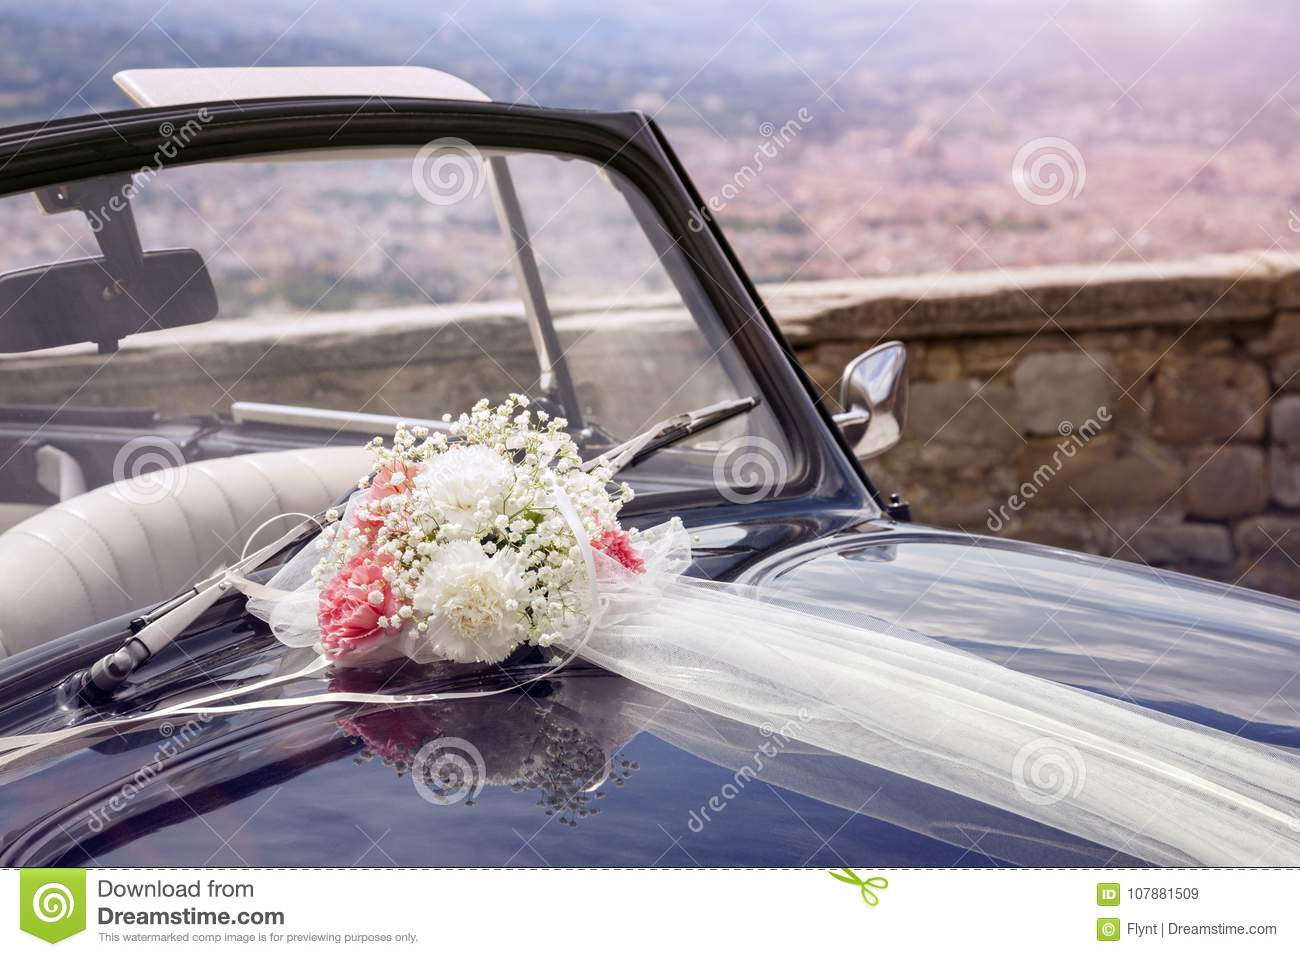 Vintage wedding car with bouquet of flowers on bonnet